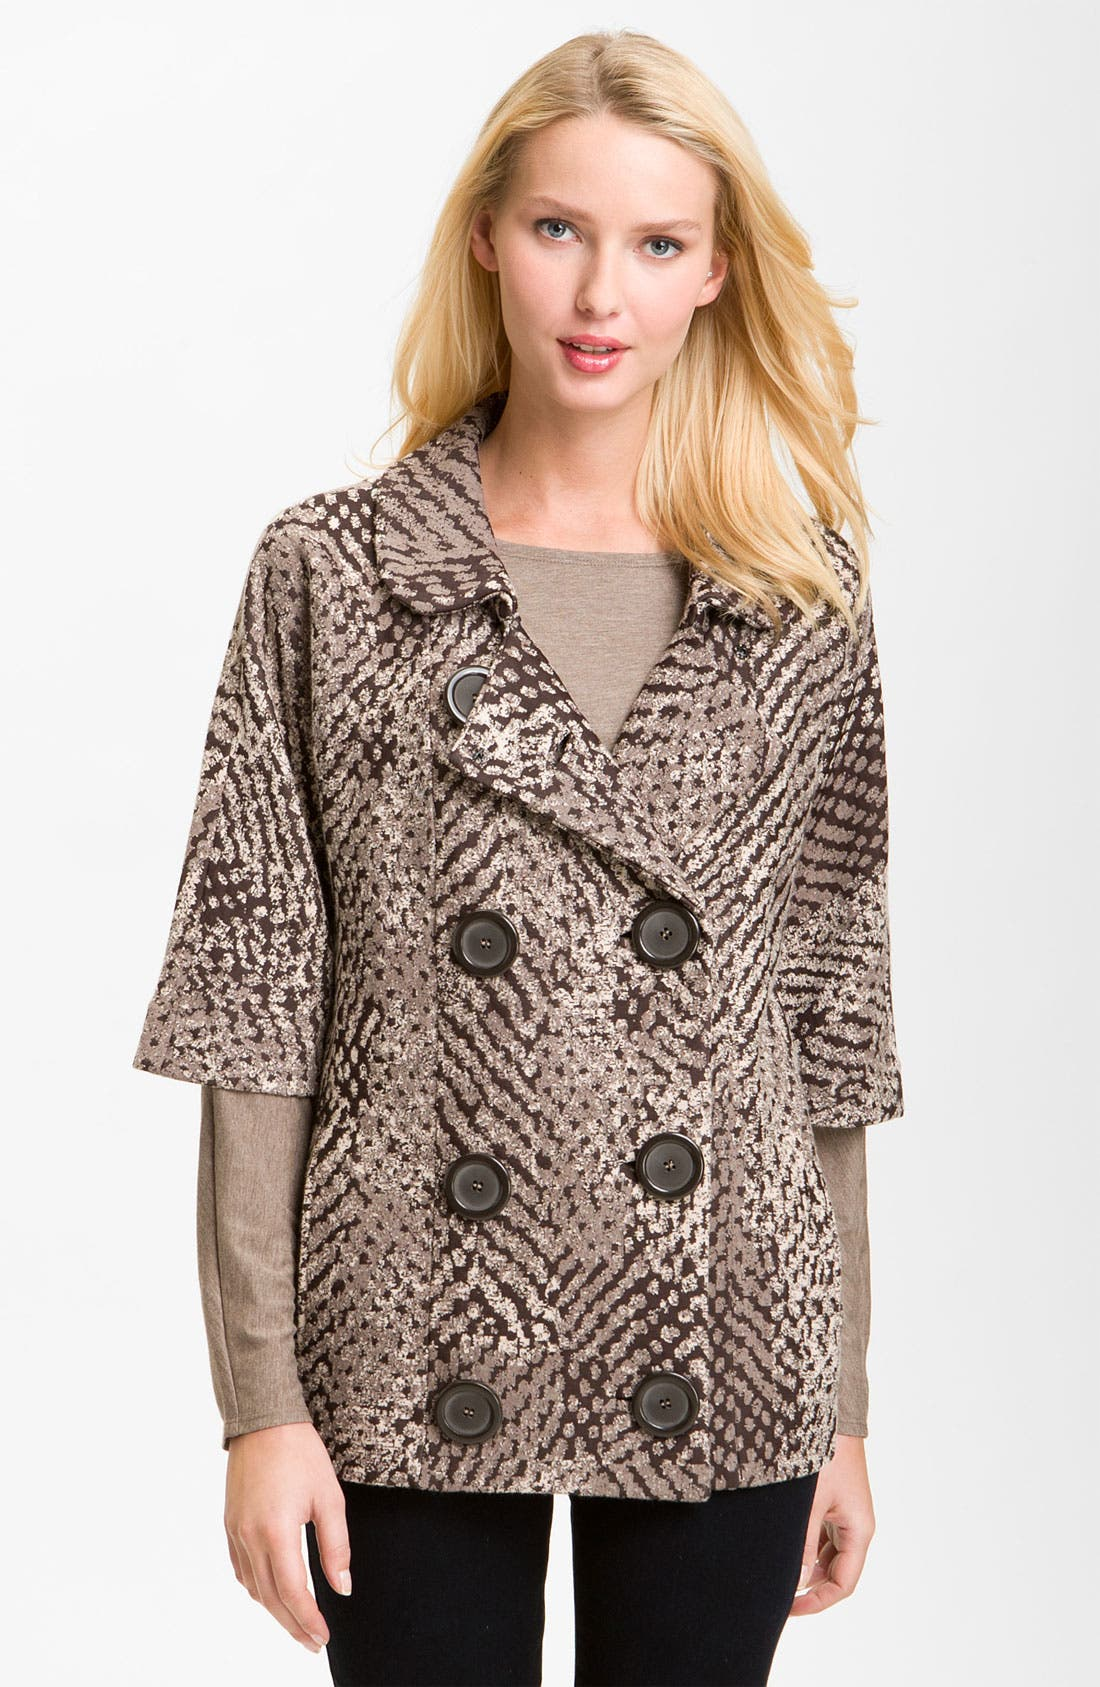 Alternate Image 1 Selected - Nic + Zoe 'Textured Dots' Knit Jacket (Petite)